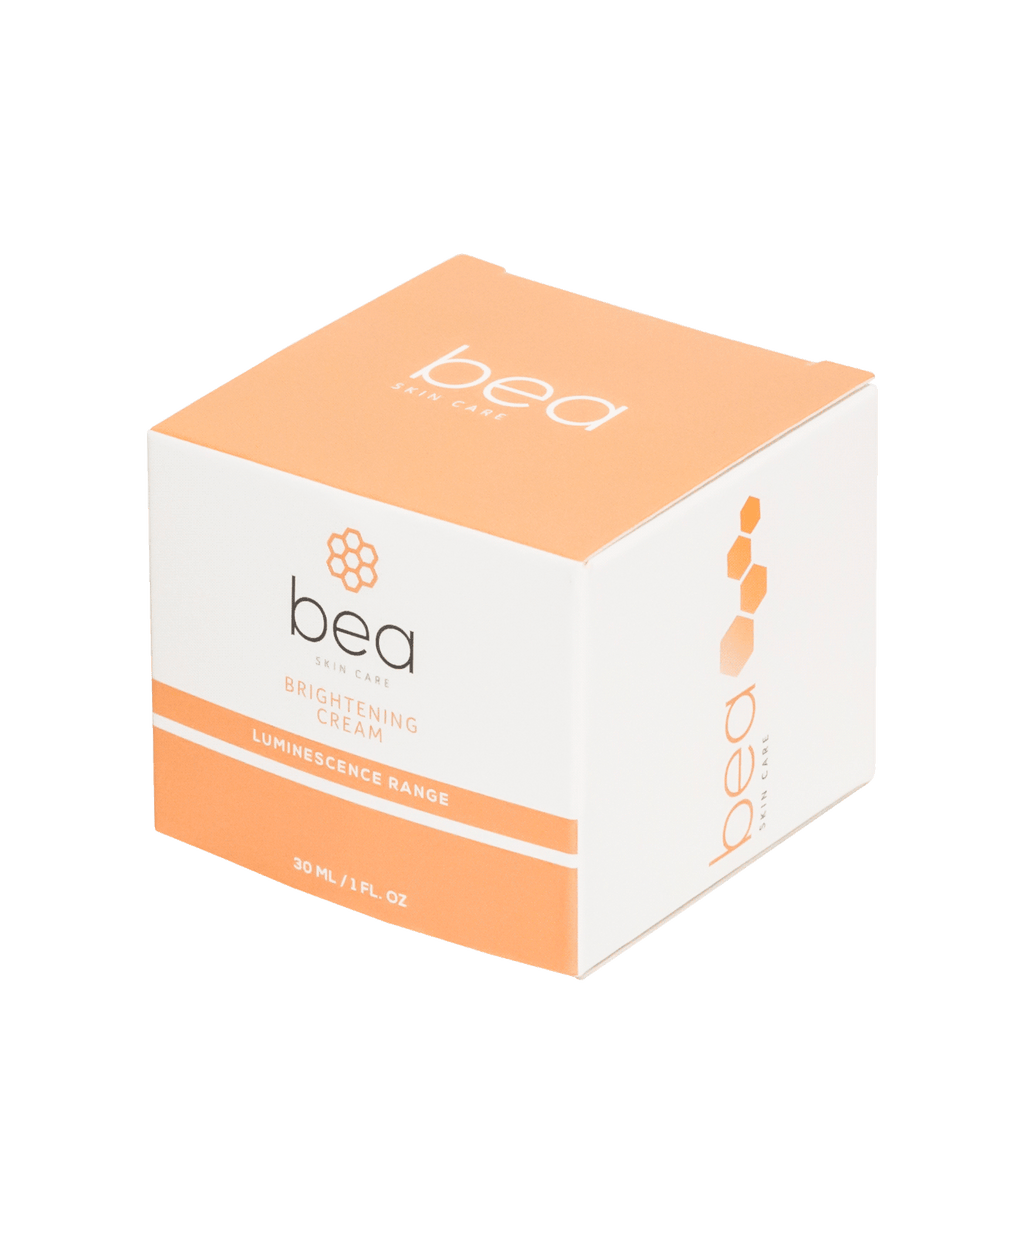 Brightening Cream - 30 ml Face Cream bea Skin Care